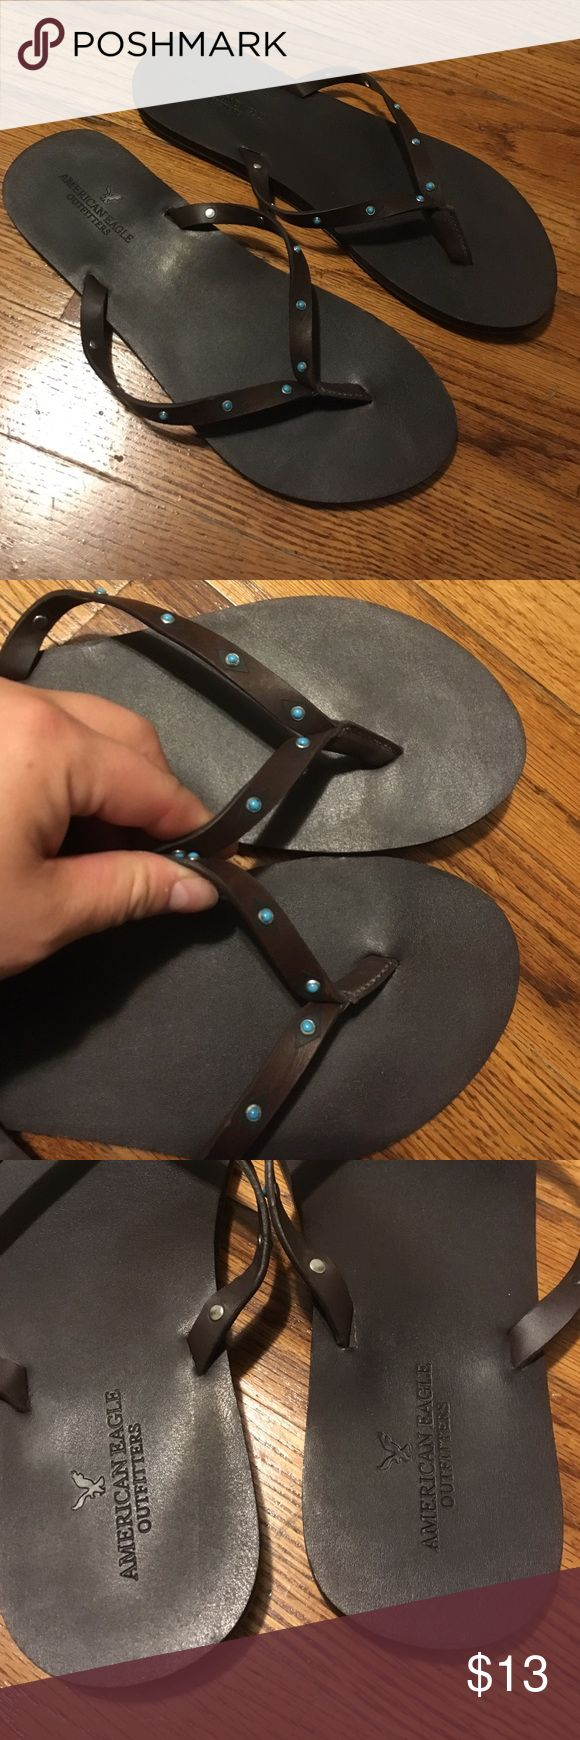 🇺🇸American Eagle🇺🇸 Flip Flops Only worn once for a couple hours. Practically new! Brown faux leather with turquoise stones on the straps American Eagle Outfitters Shoes Sandals